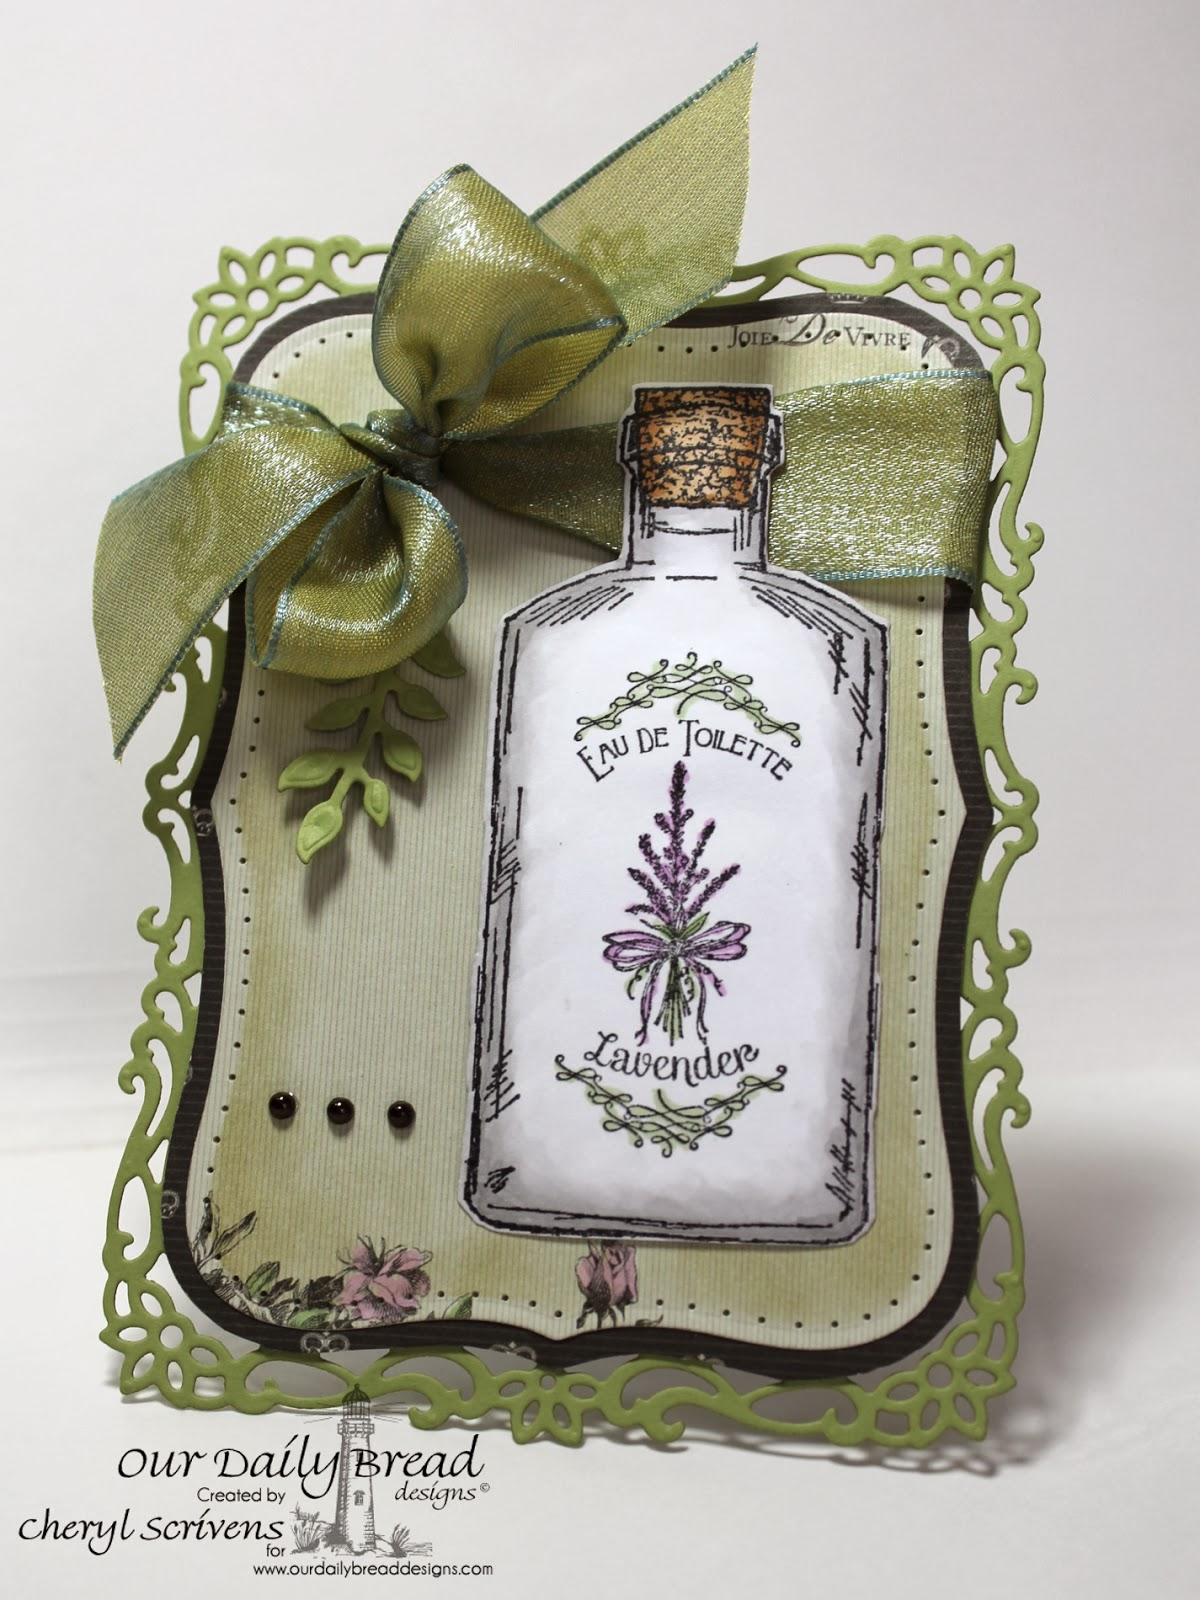 Our Daily Bread Designs, Apothecary Bottles, Lavender, ODBD Custom Apothecary Bottles Dies, CherylQuilts, Shining the Light Challenge